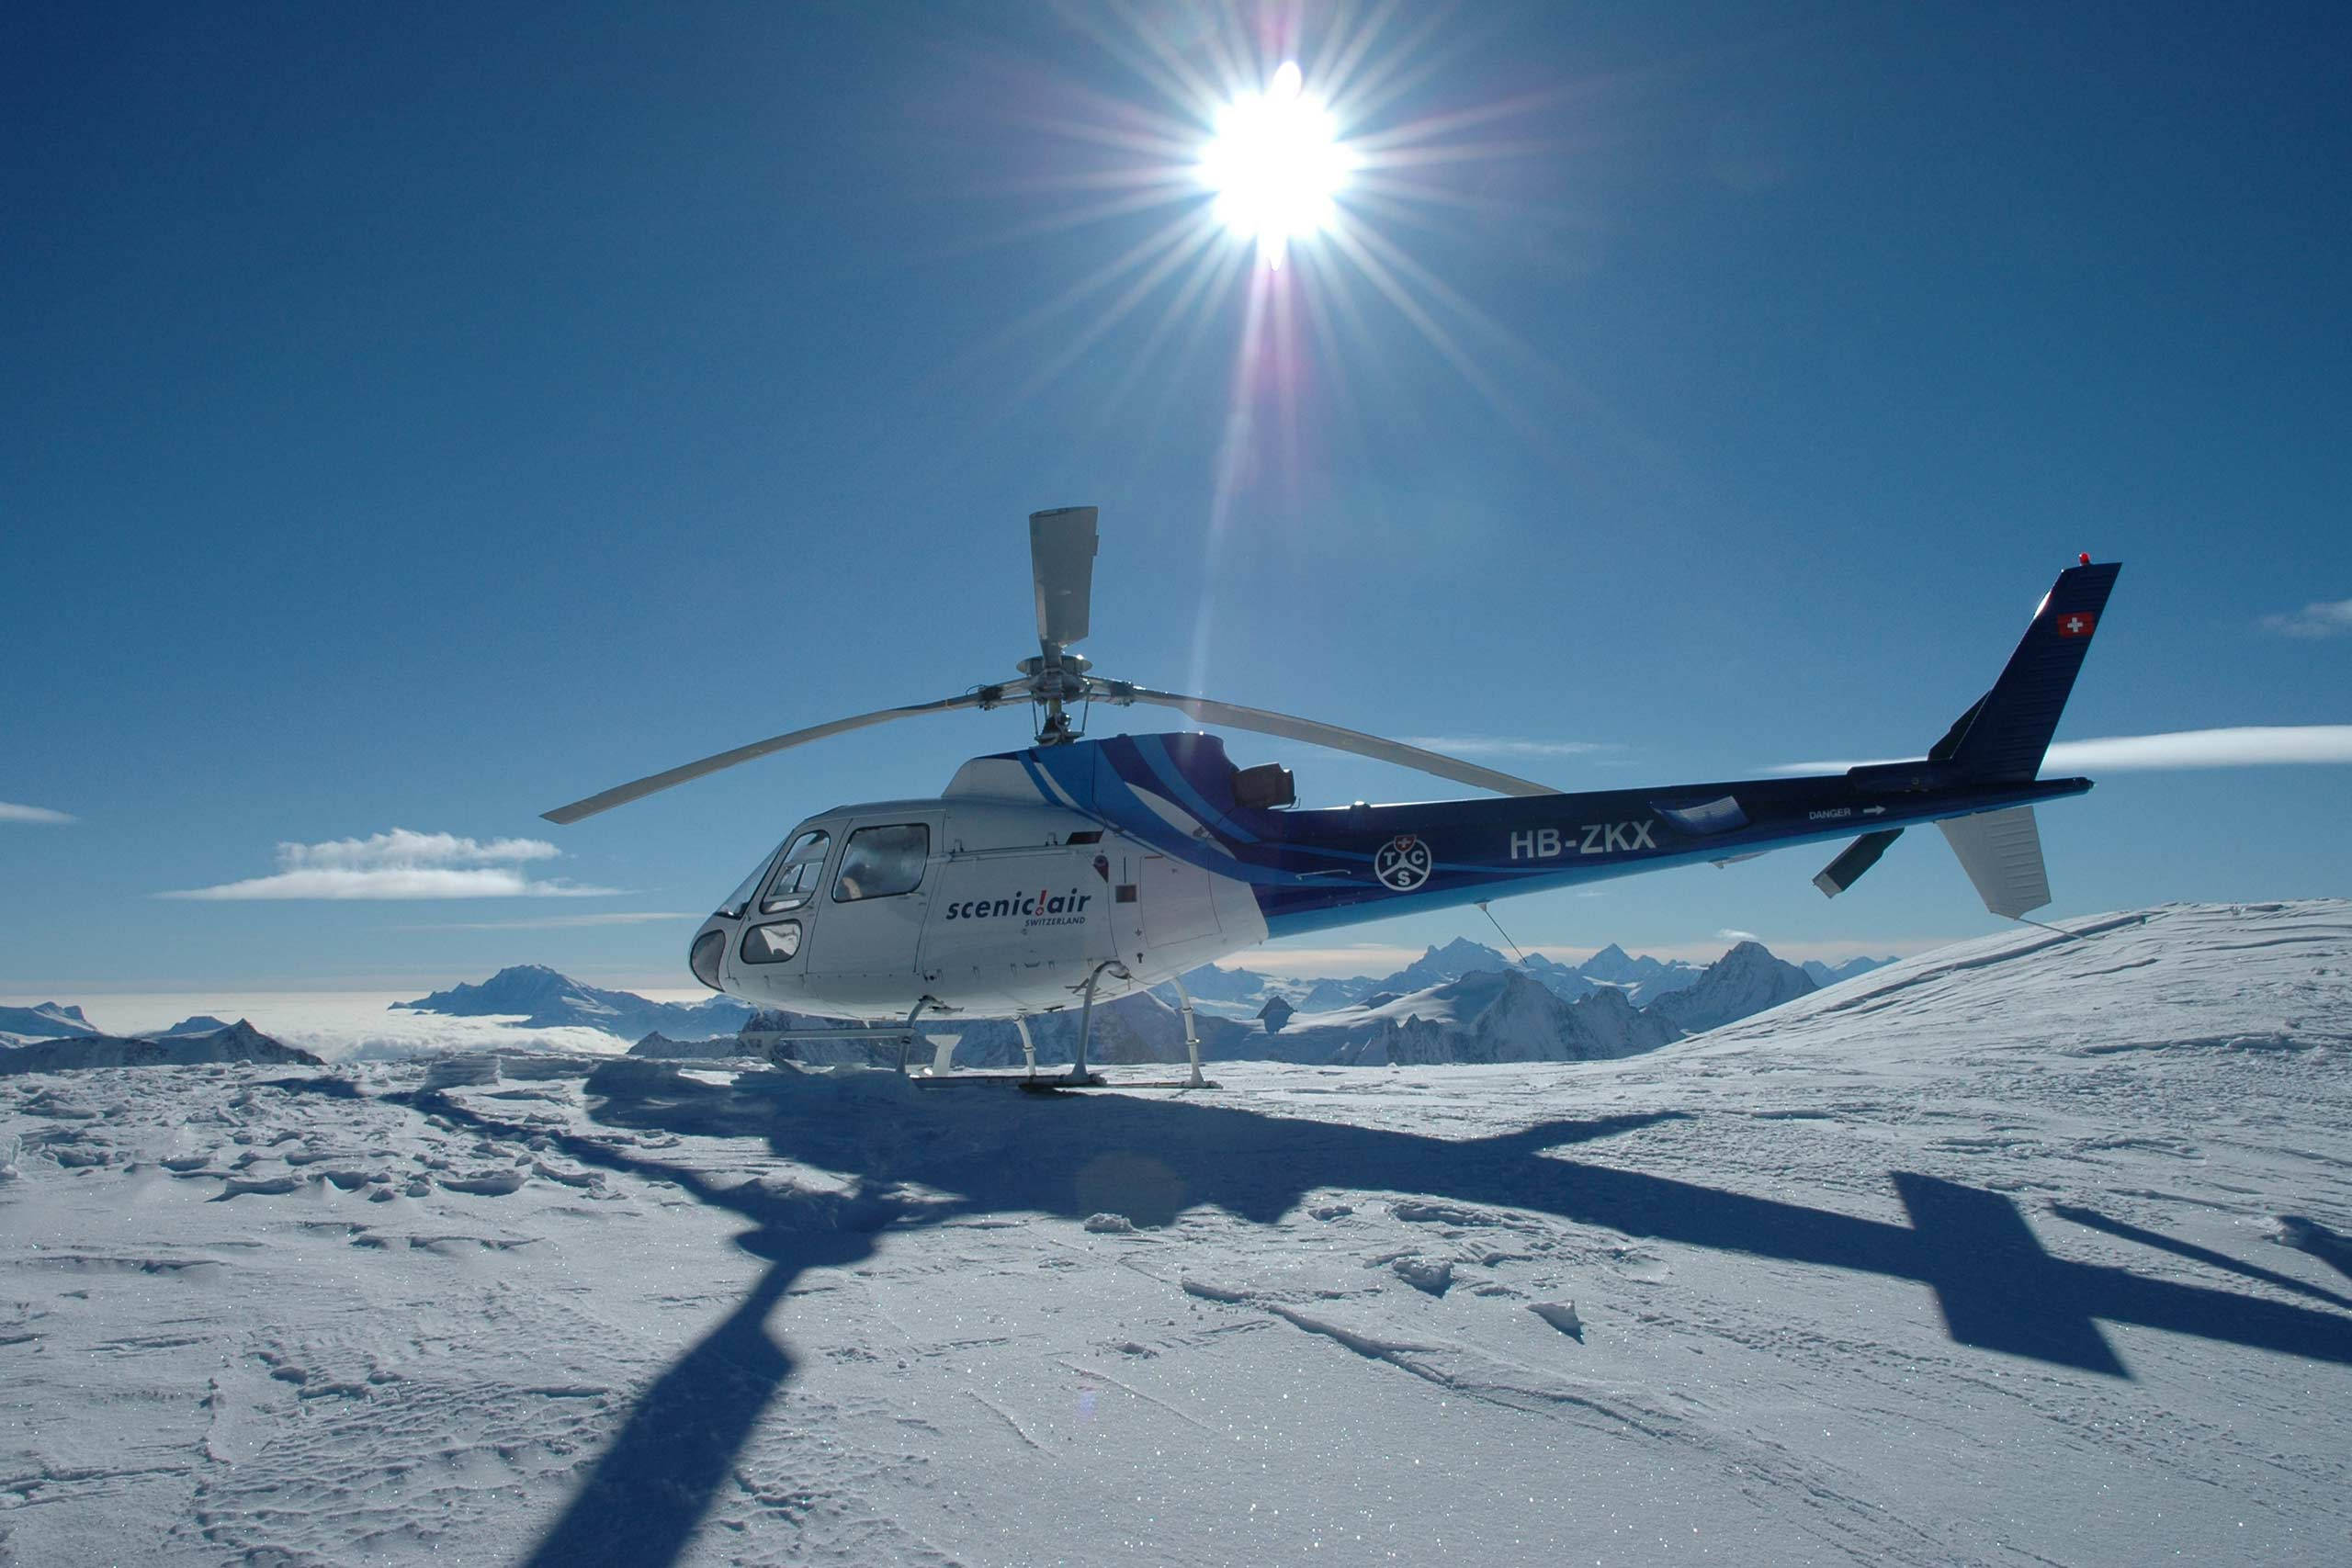 scinic-air-helikopter-sonne-gletscher-schnee-petersgrat.jpg